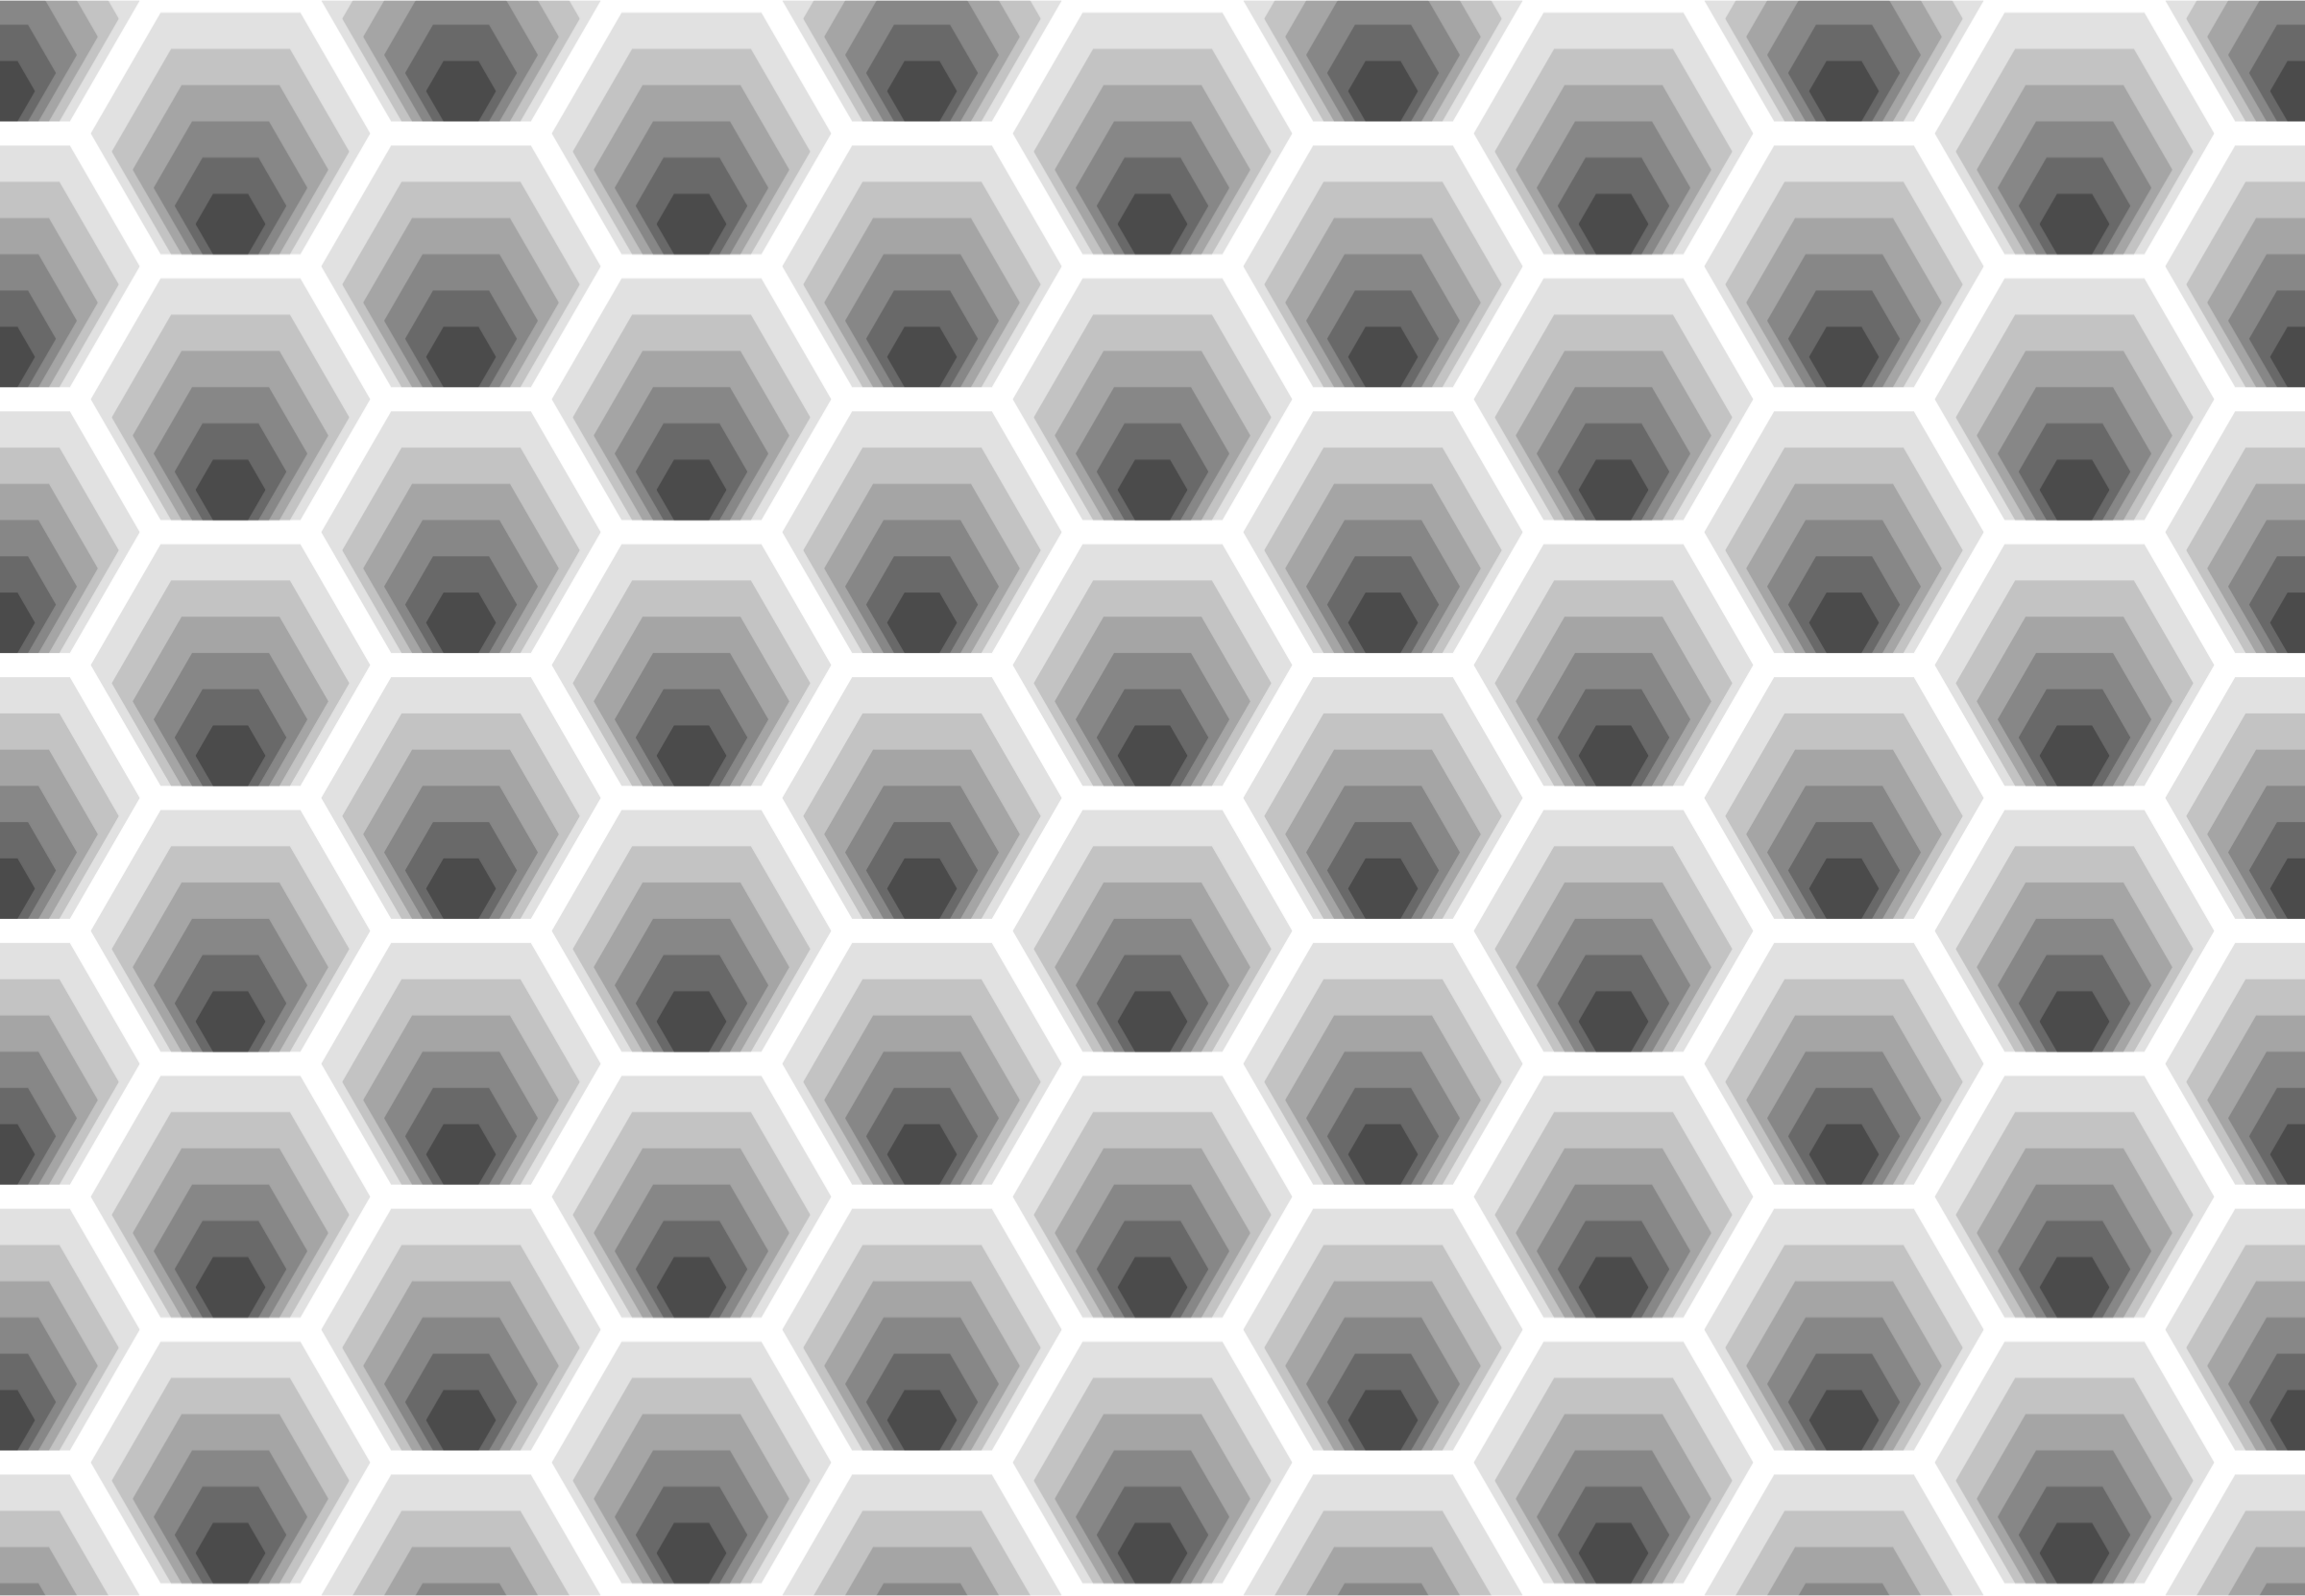 Hexagonal pattern 2 by Firkin